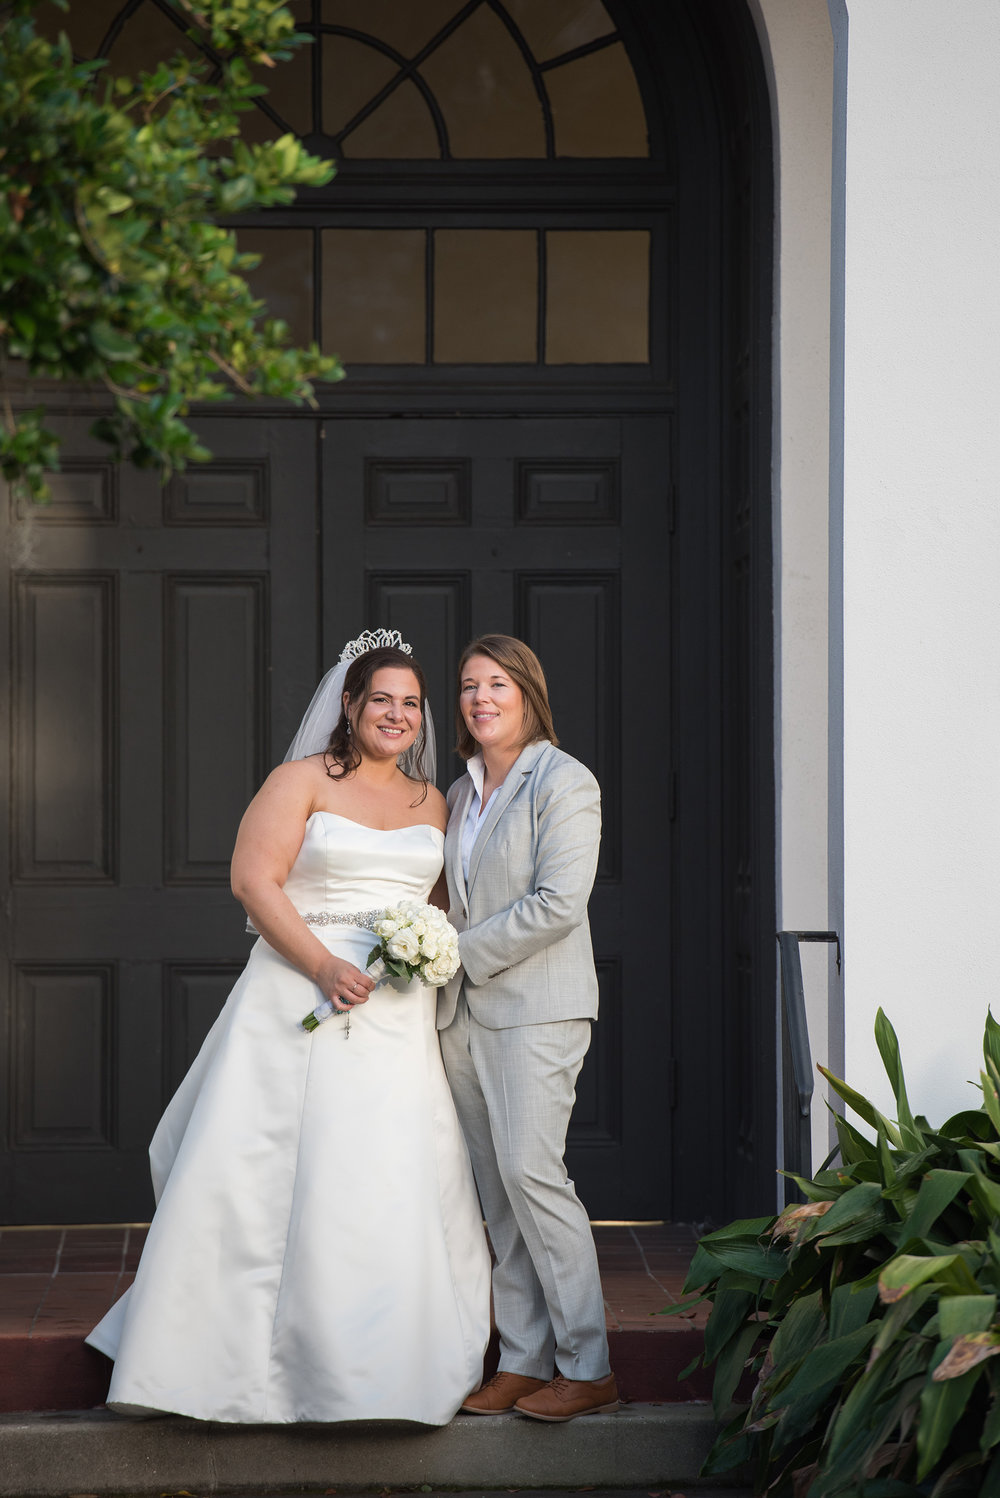 Outdoor Garden Lesbian Gay Wedding Portrait Winter Park Orlando Florida